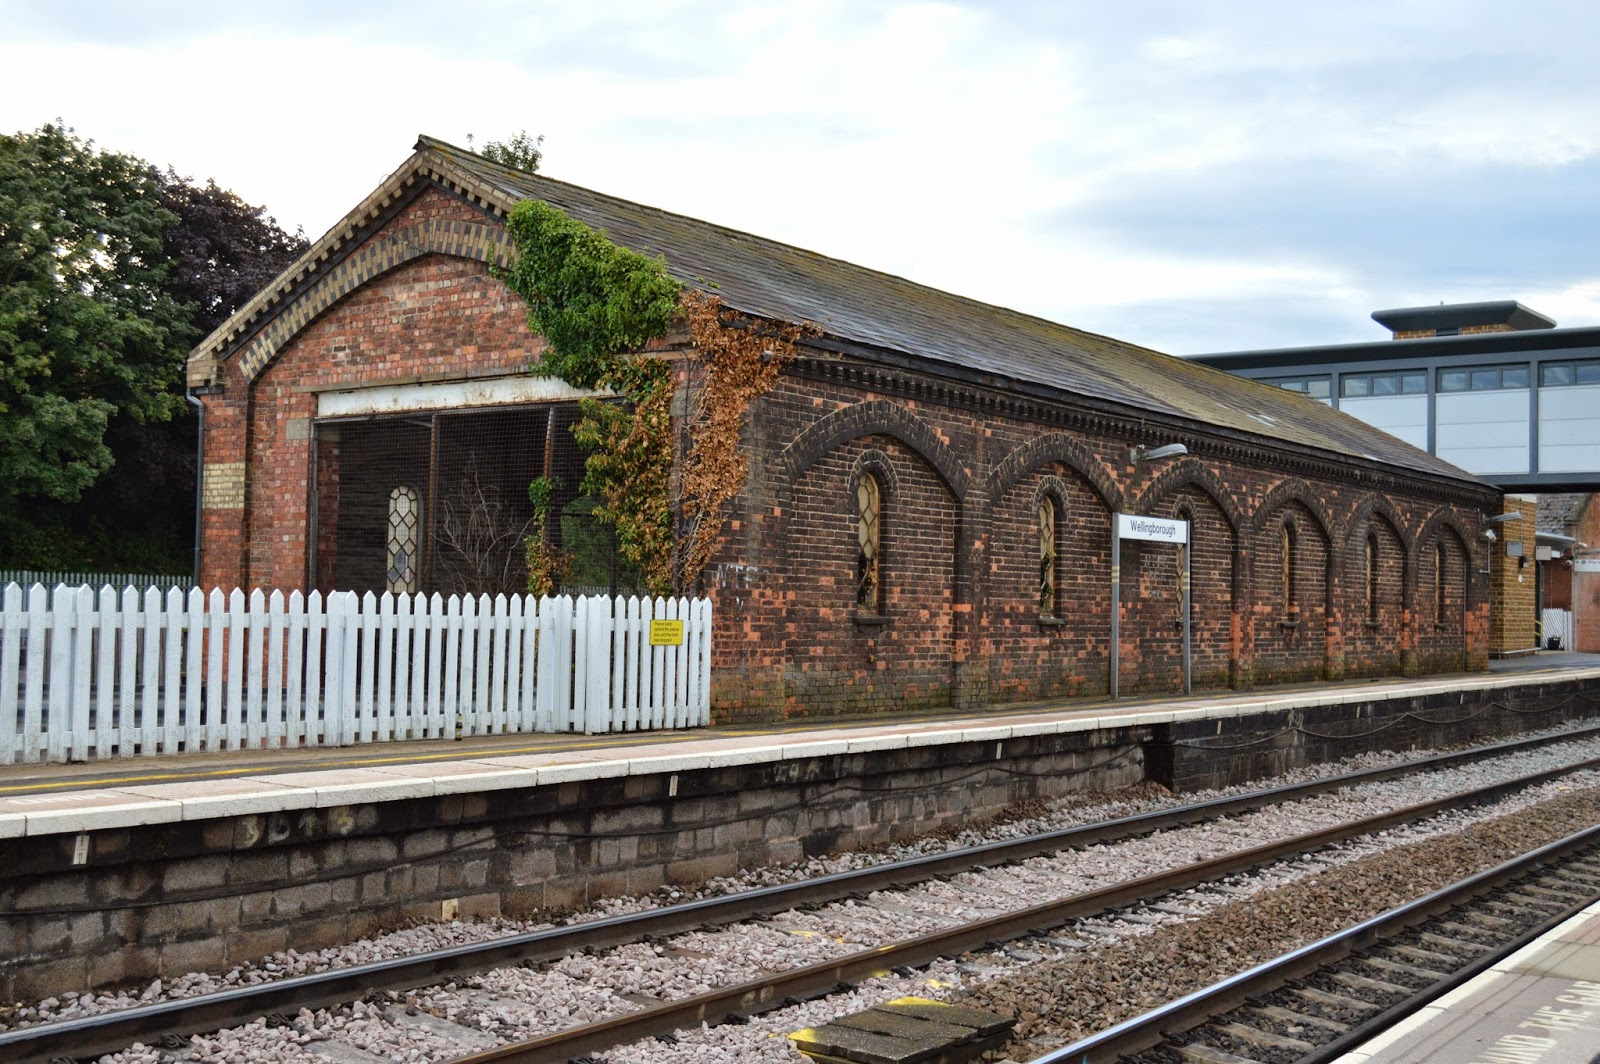 Wellingborough goods shed, built in late Victorian times for the London Midland & Scottish Railway, has survived in much the same condition as it was when built.  Luckily the building is now under protection as Grade II listed builings.